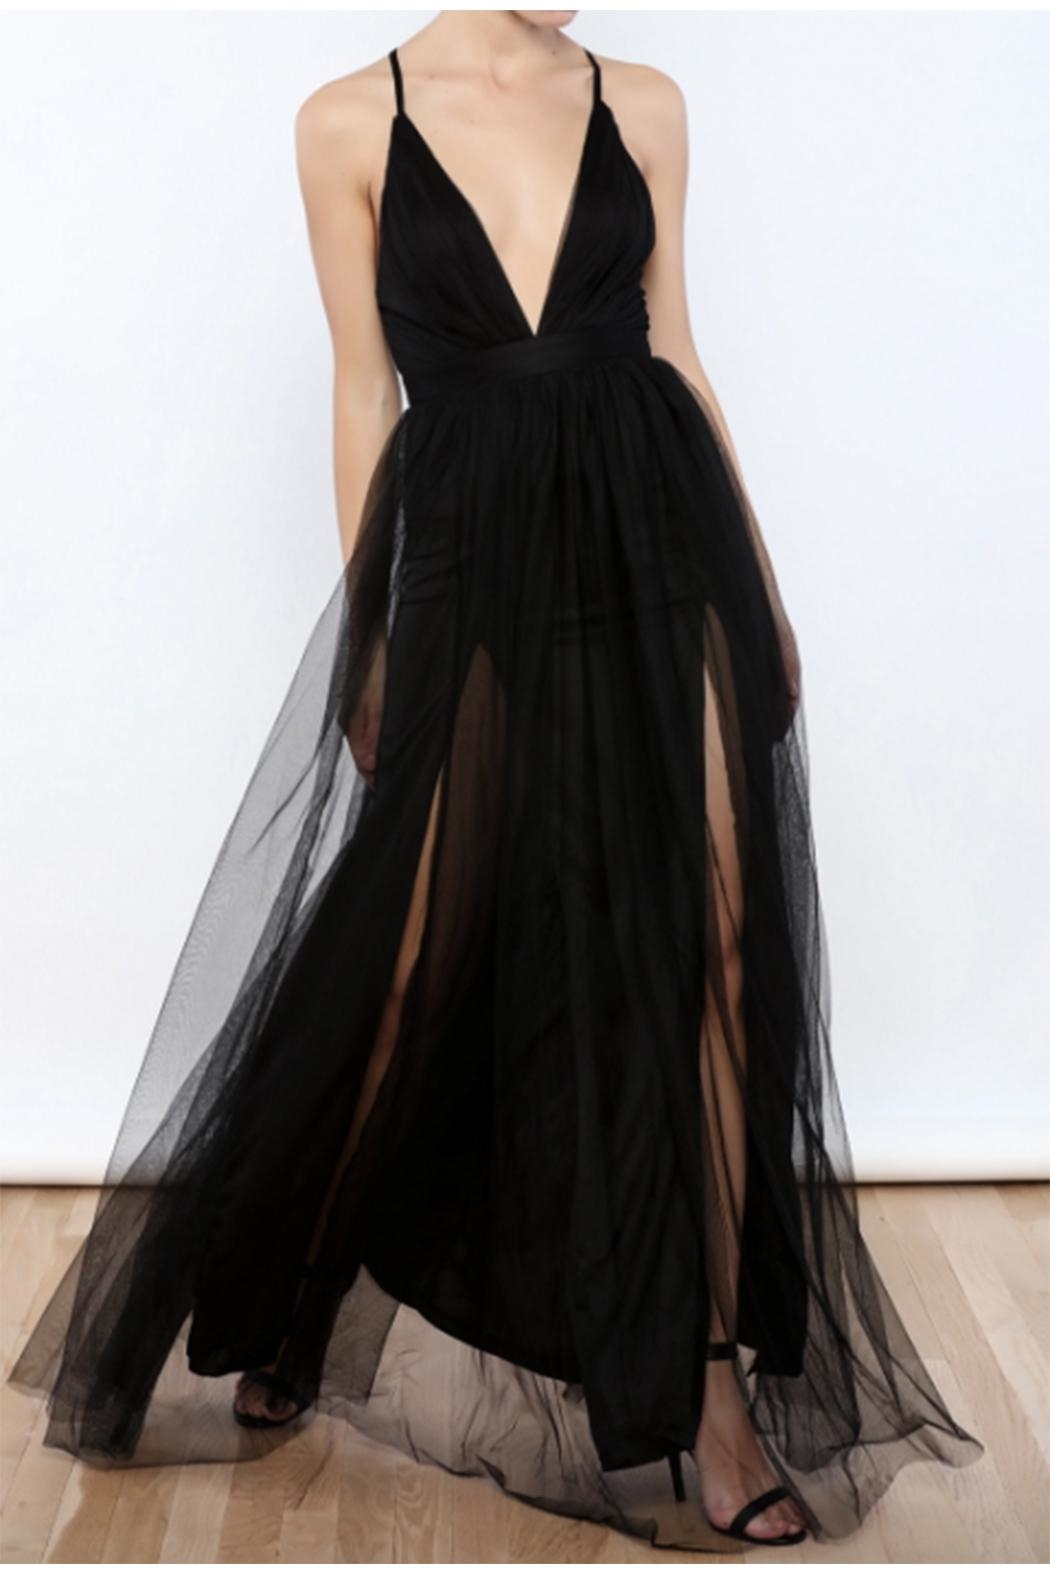 8c8bdd8e66 luxxel Tulle Maxi Dress from New York by Dor L Dor — Shoptiques